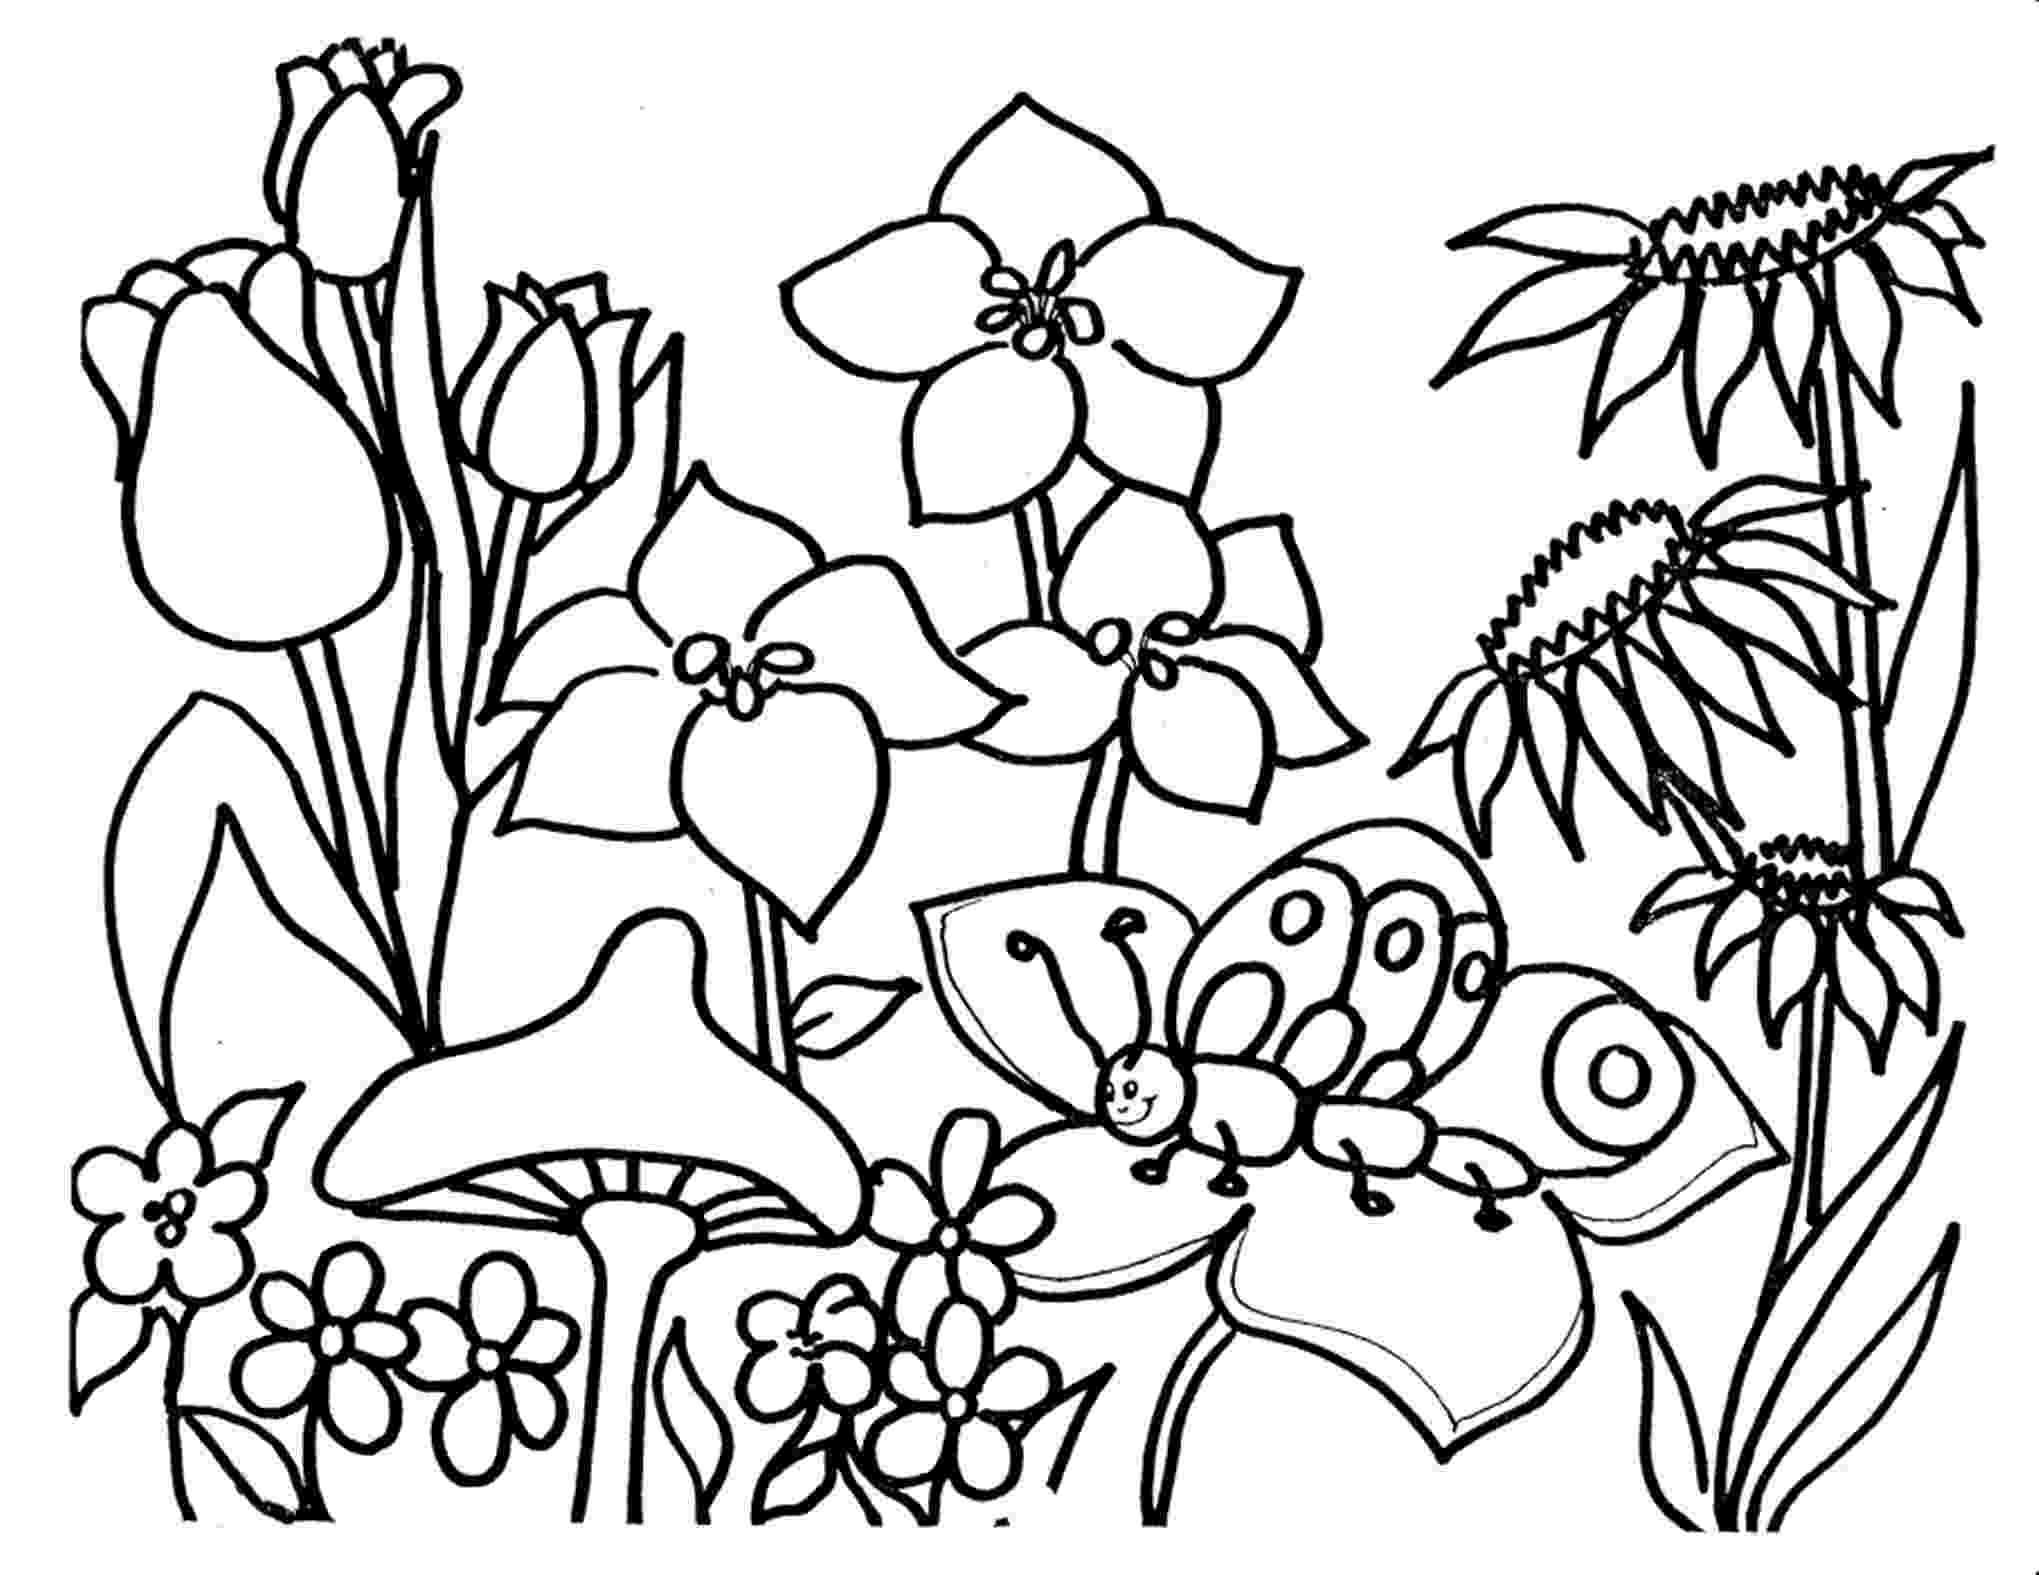 pictures of flowers to print and color free printable flower coloring pages for kids best color flowers and to print of pictures